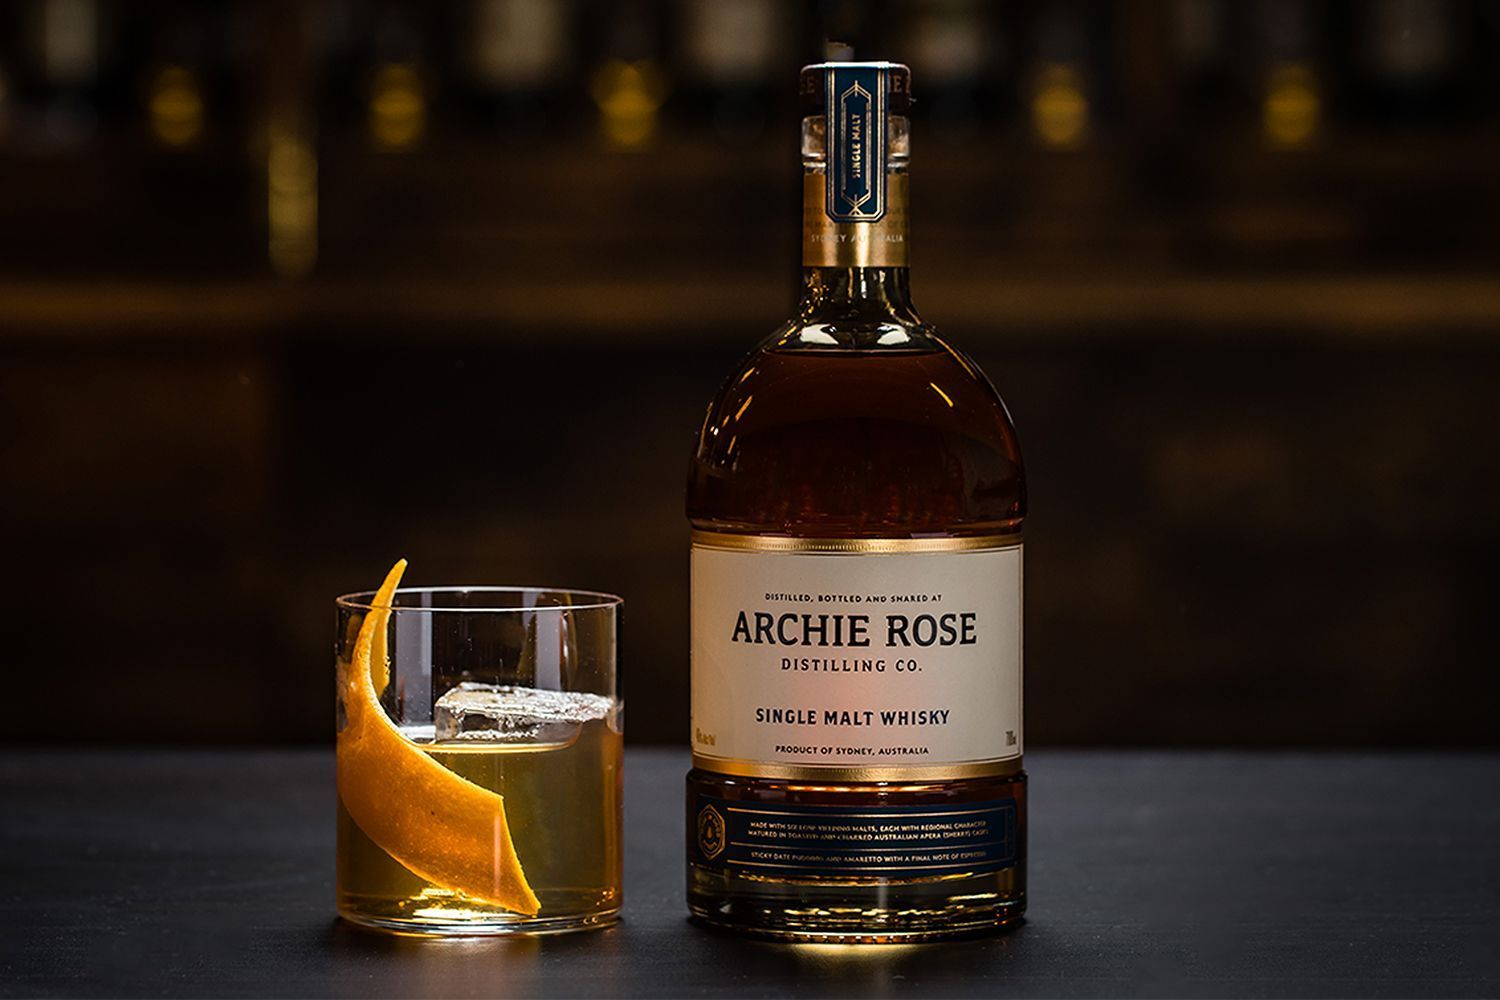 Archie Rose Distilling Co Has Released Its First-ever Aged Malt Whisky photo